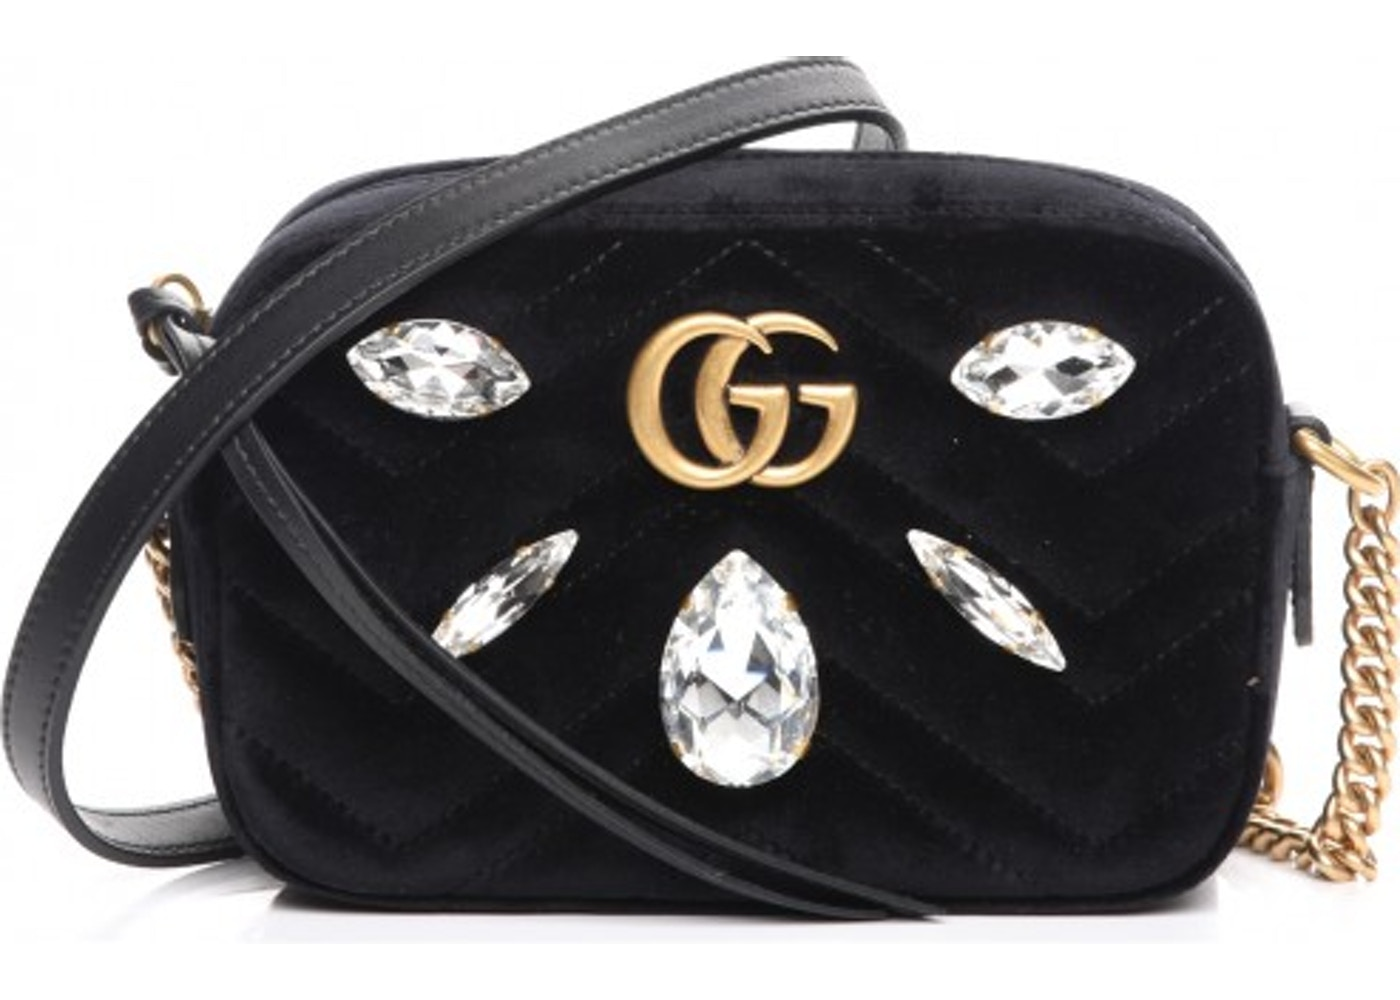 9546aef1745 Gucci Shoulder Bag Marmont Matelasse Marquise Crystals Mini Black